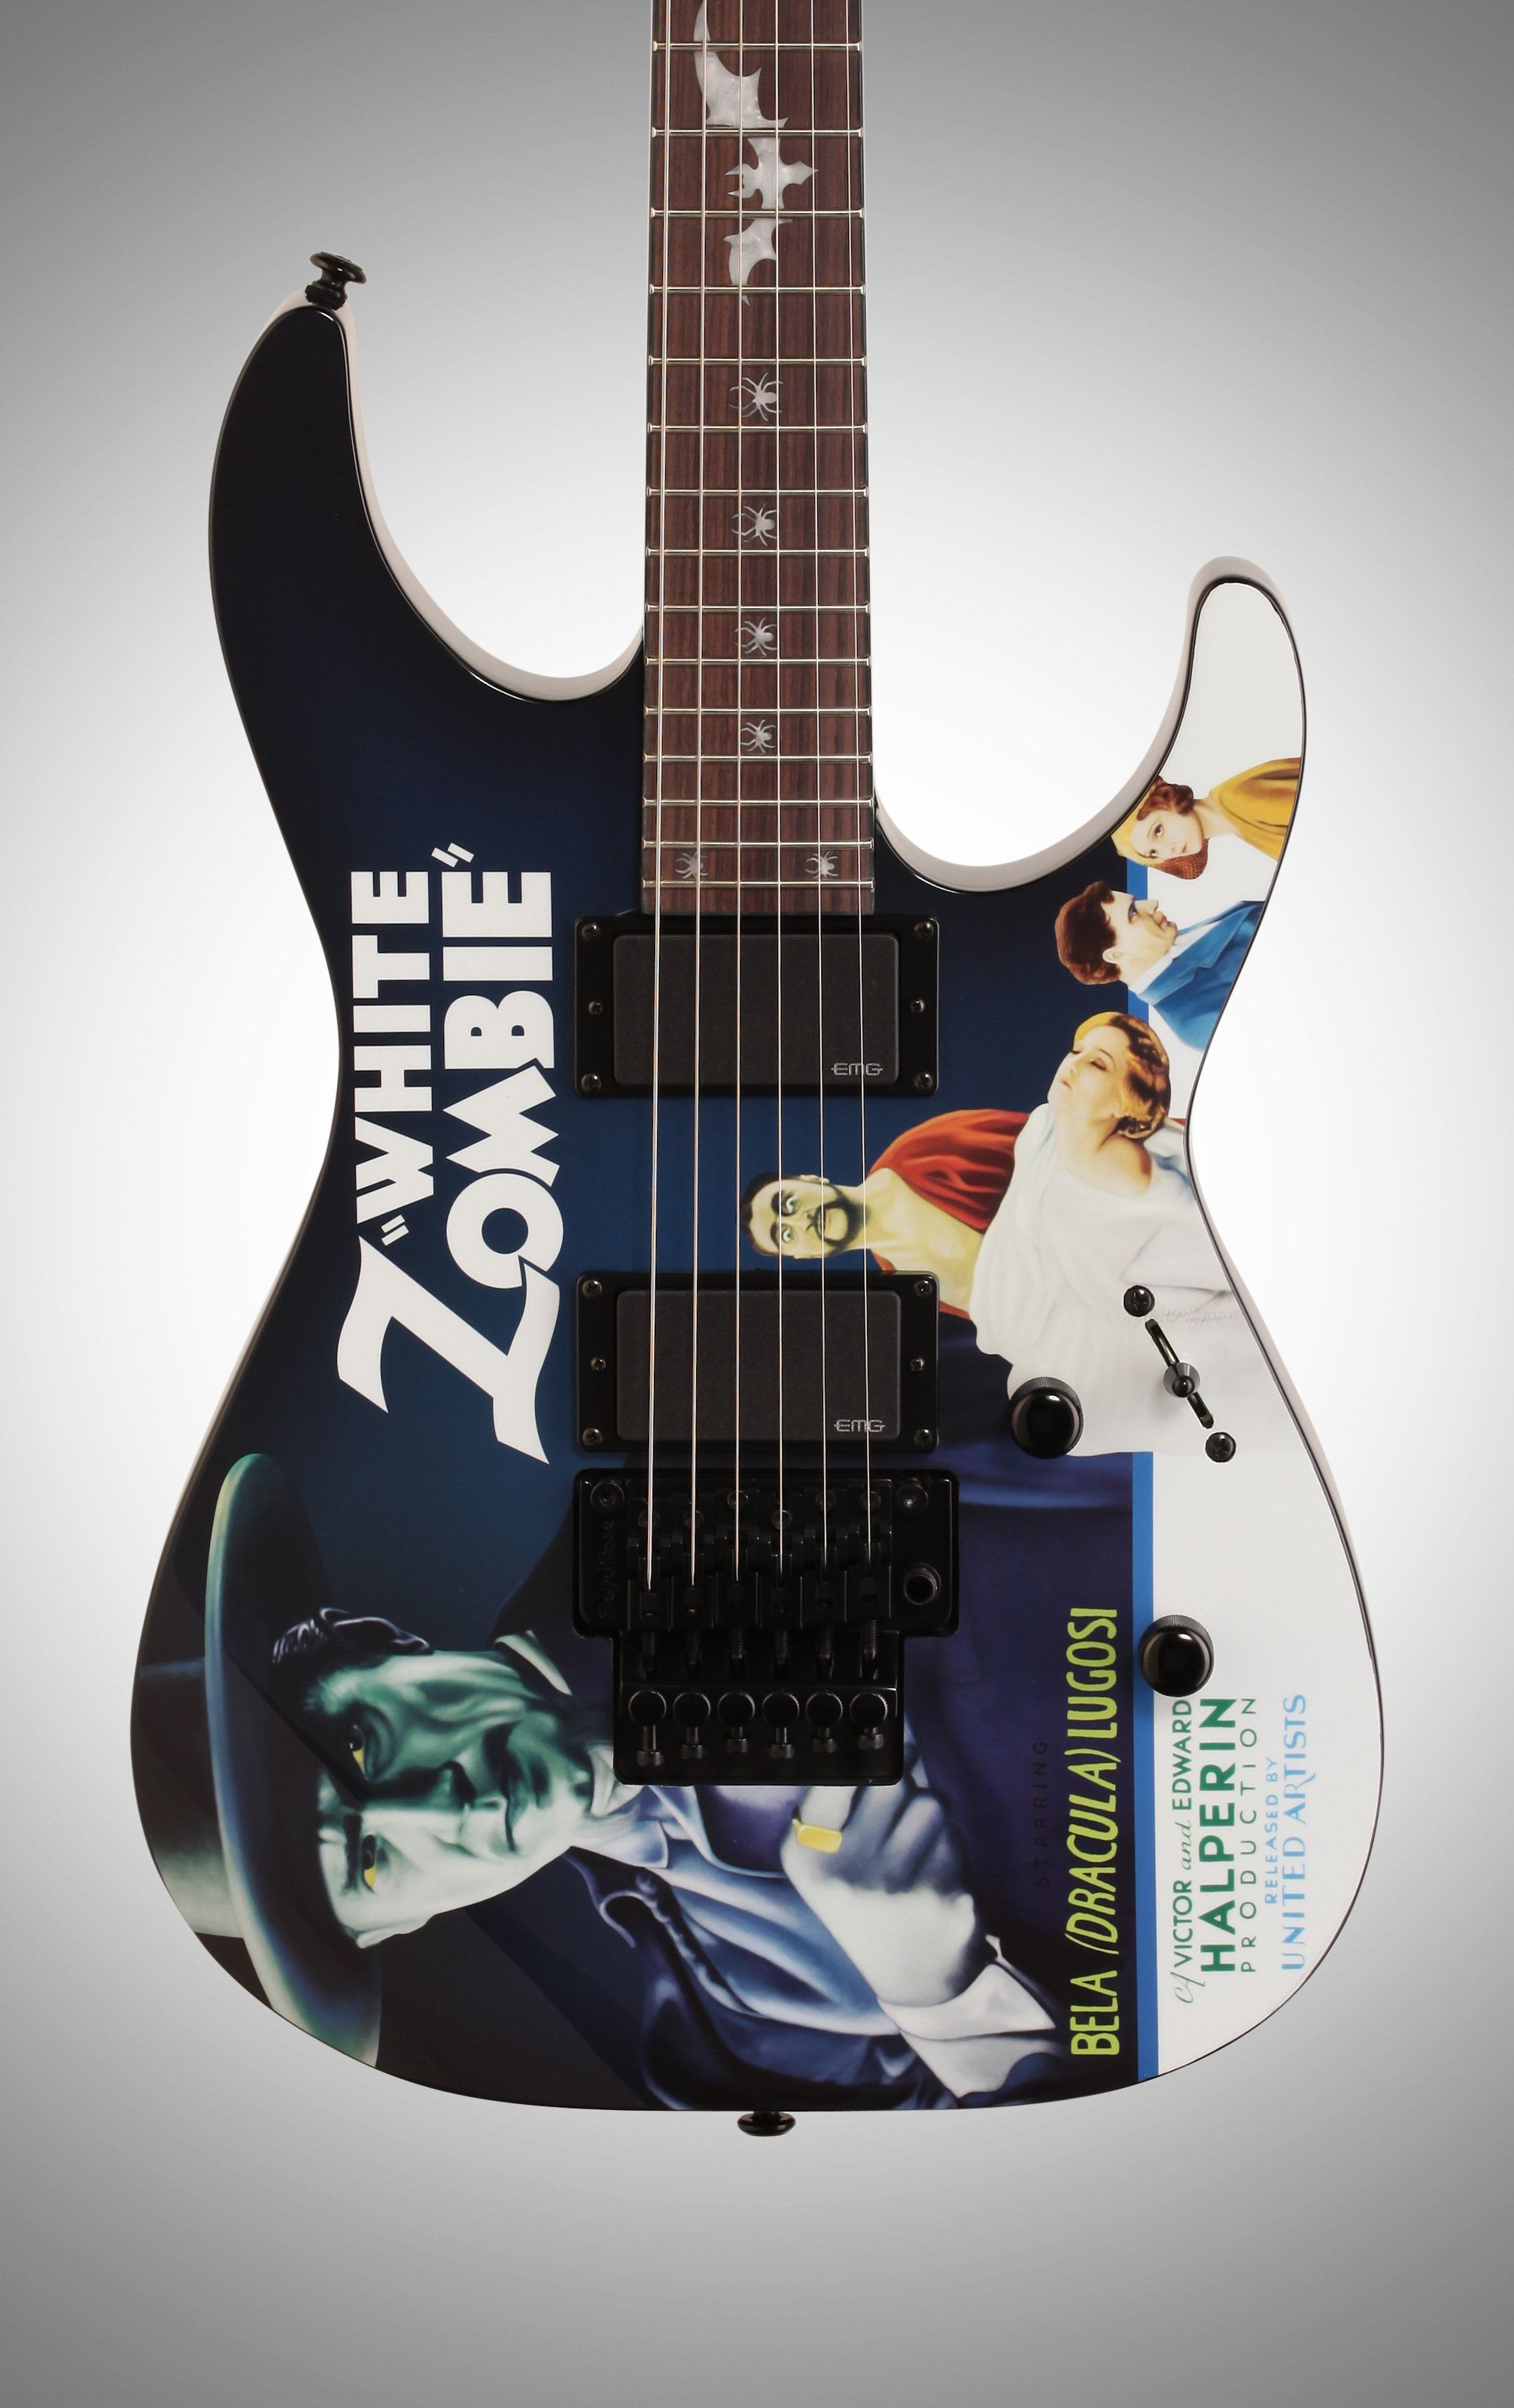 Pin By Lonewolfmtm On Guitars Guitar Guitar Collection